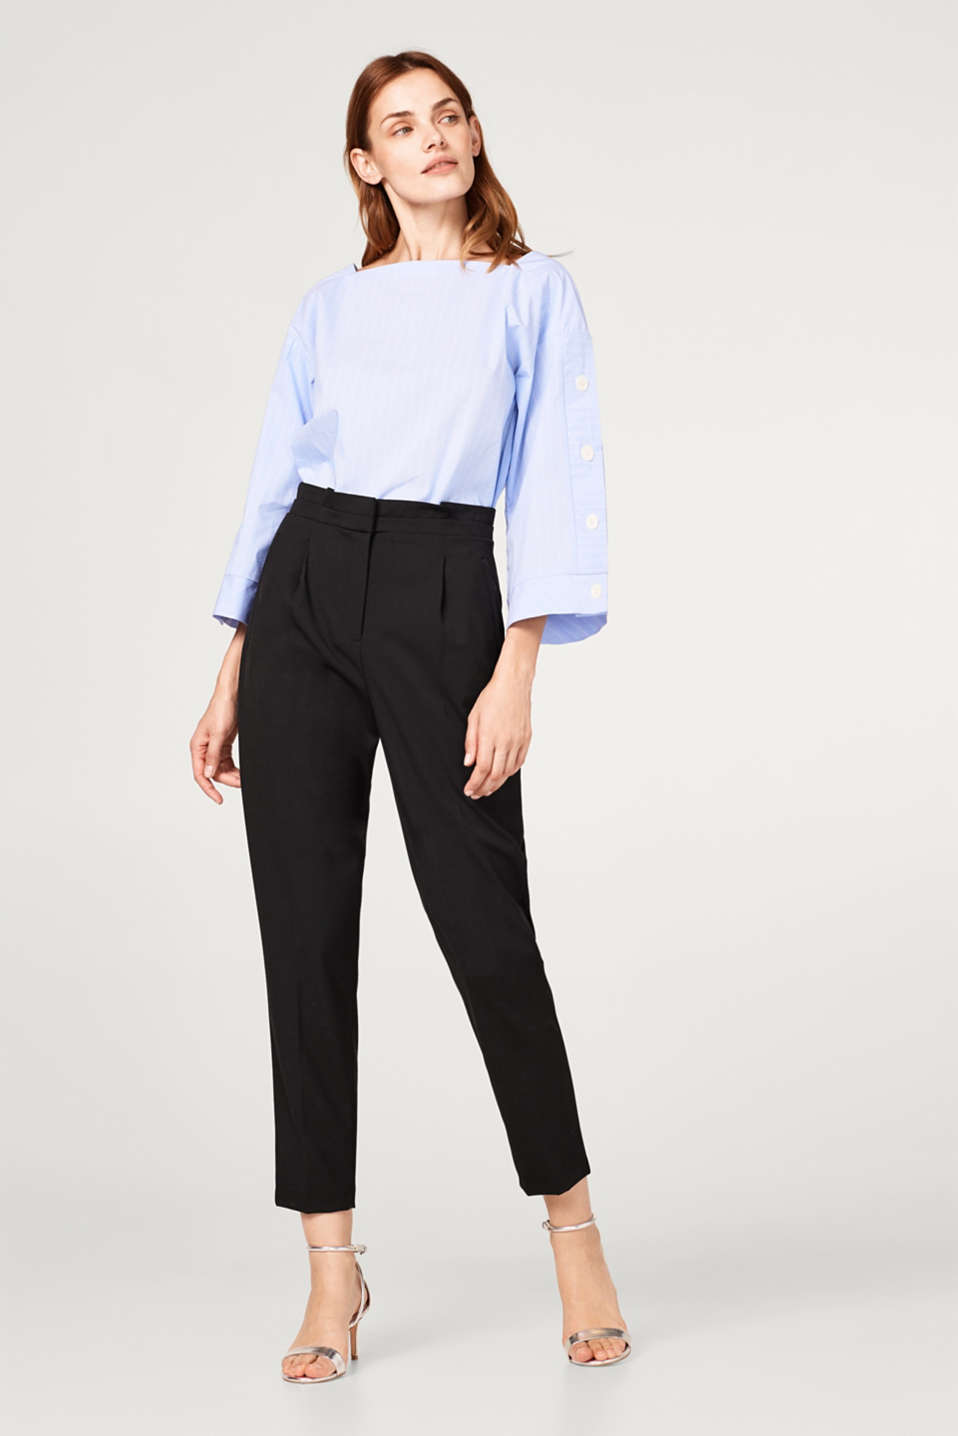 Esprit - Stylish stretch cotton trousers with a paper bag waistband